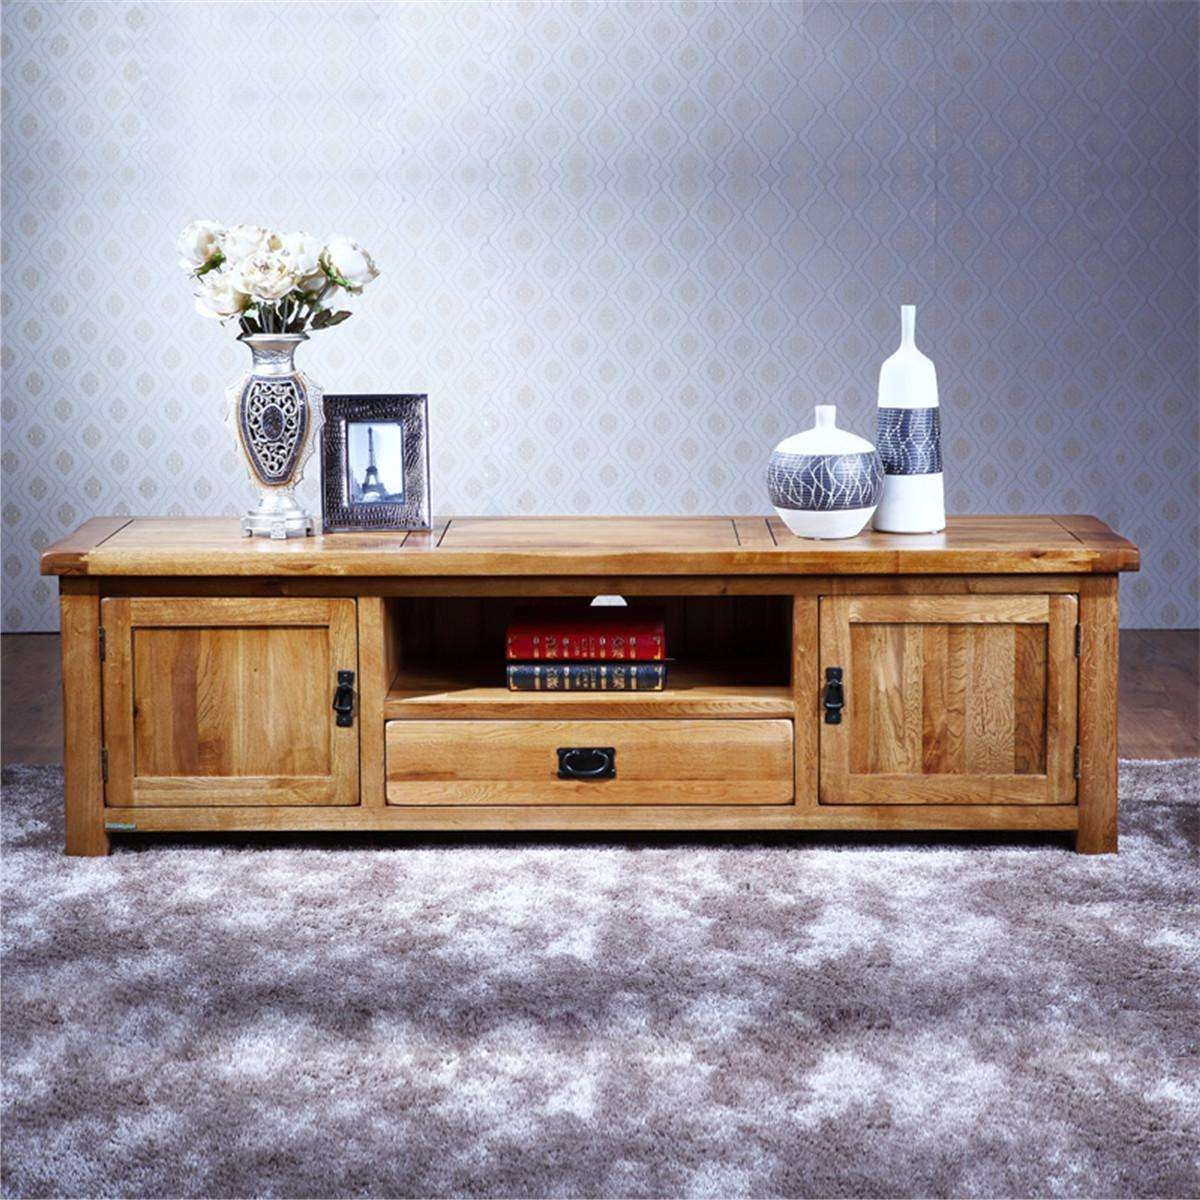 Pure Solid Wood Tv Stand Oak Media Console Inspirations Decoration With Regard To Hardwood Tv Stands (View 9 of 15)